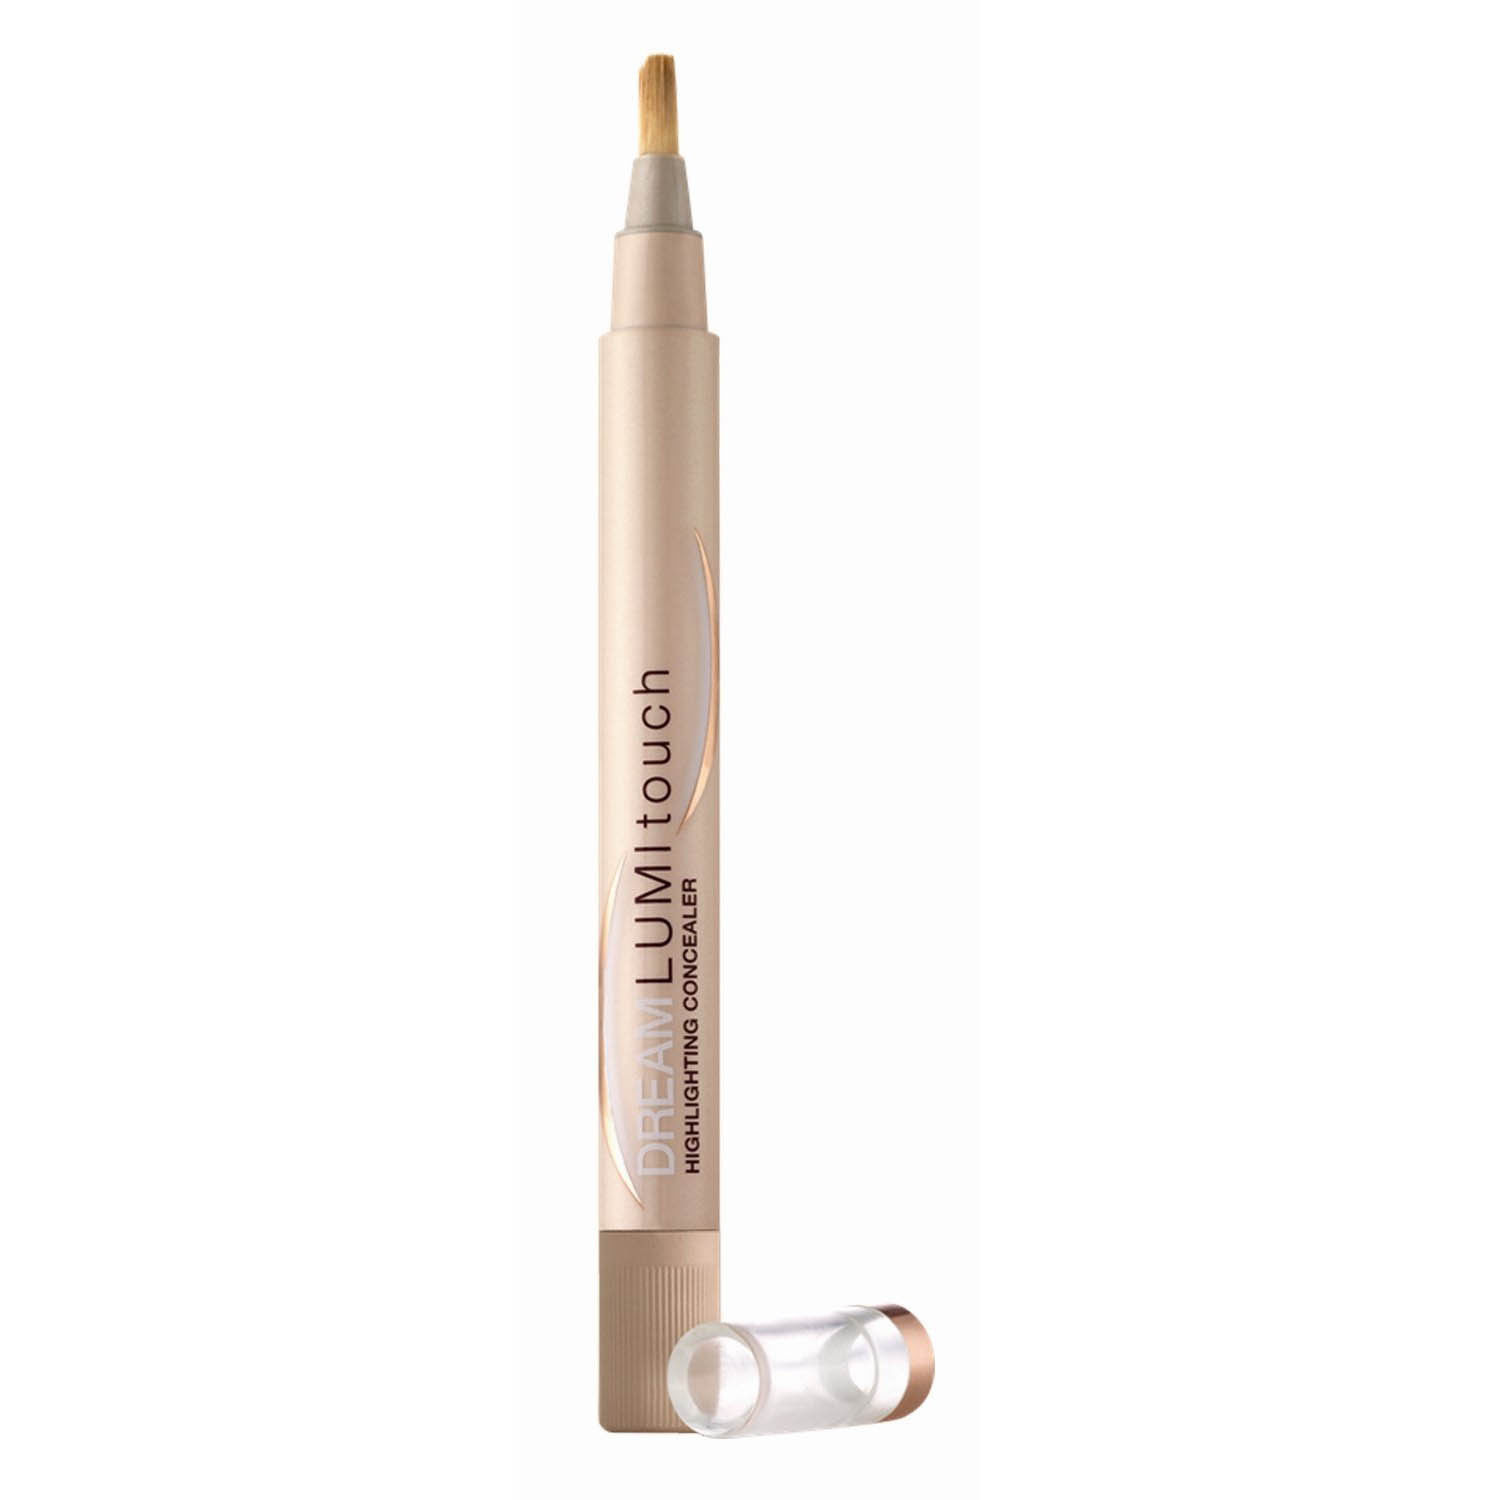 Maybelline Dream Lumi Touch Highlighting Concealer - Sand